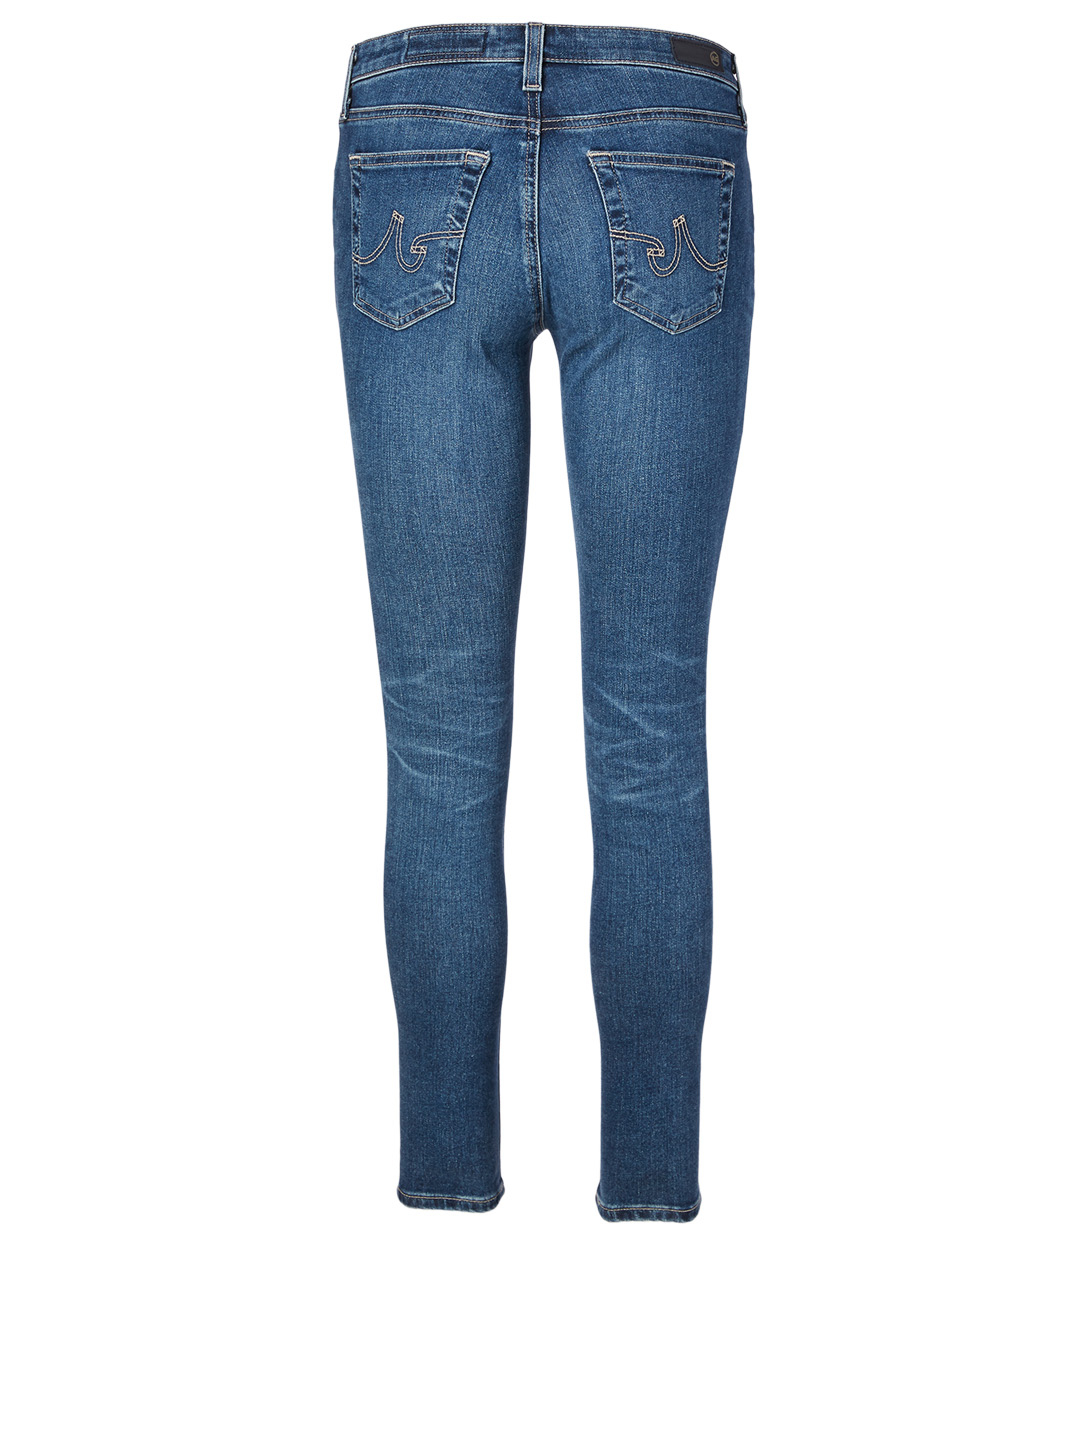 AG Legging Ankle Jeans Women's Blue